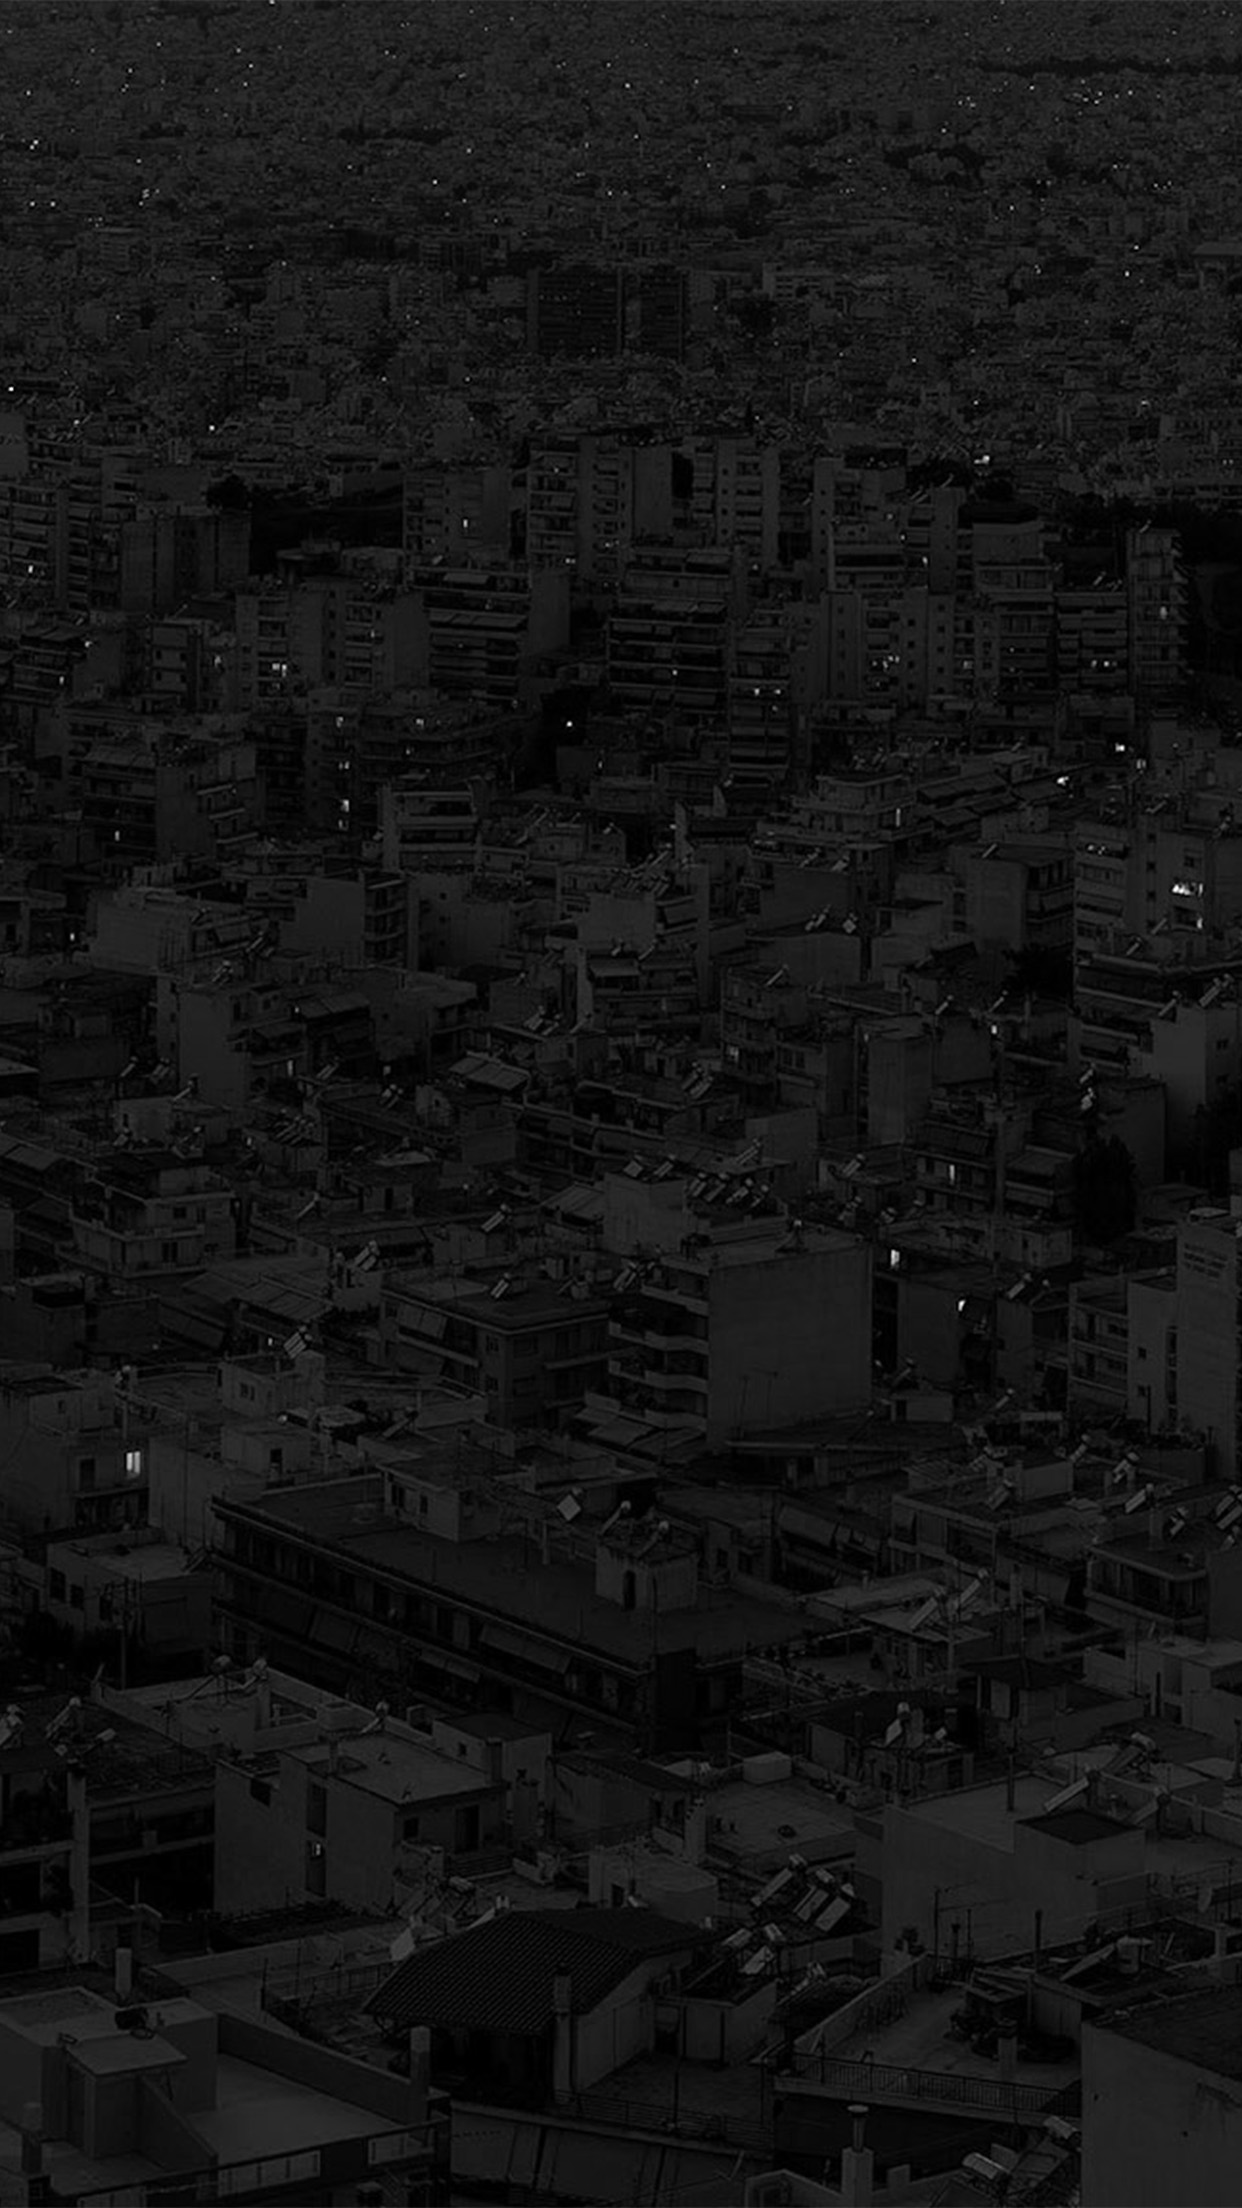 papers.co be38 dark city night art illustration bw 34 iphone6 plus wallpaper